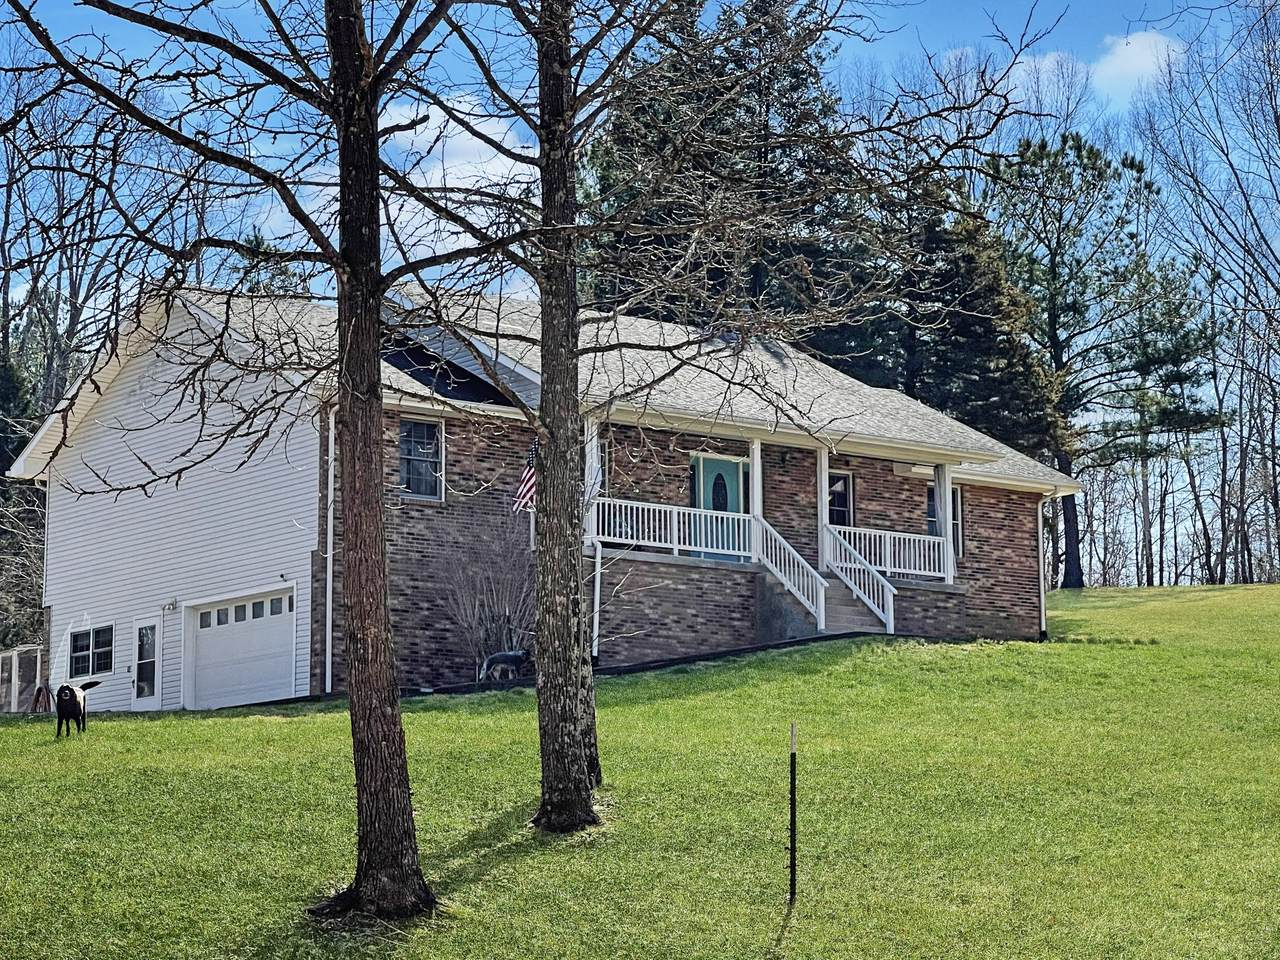 158 Wildlife Rd - Photo 1